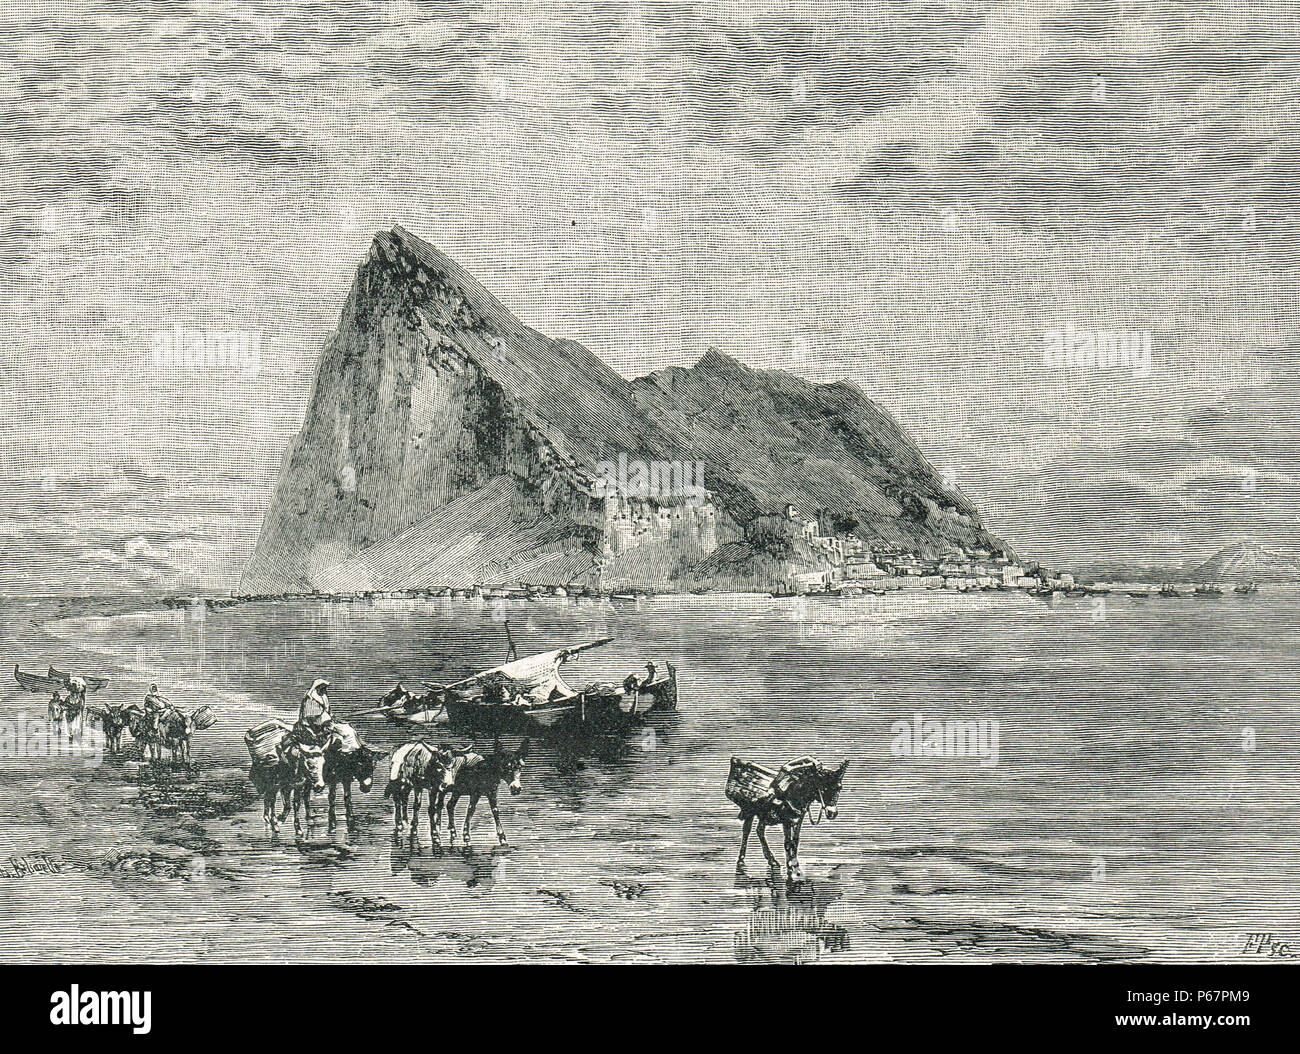 Rocher de Gibraltar, l'illustration du xixe siècle Photo Stock